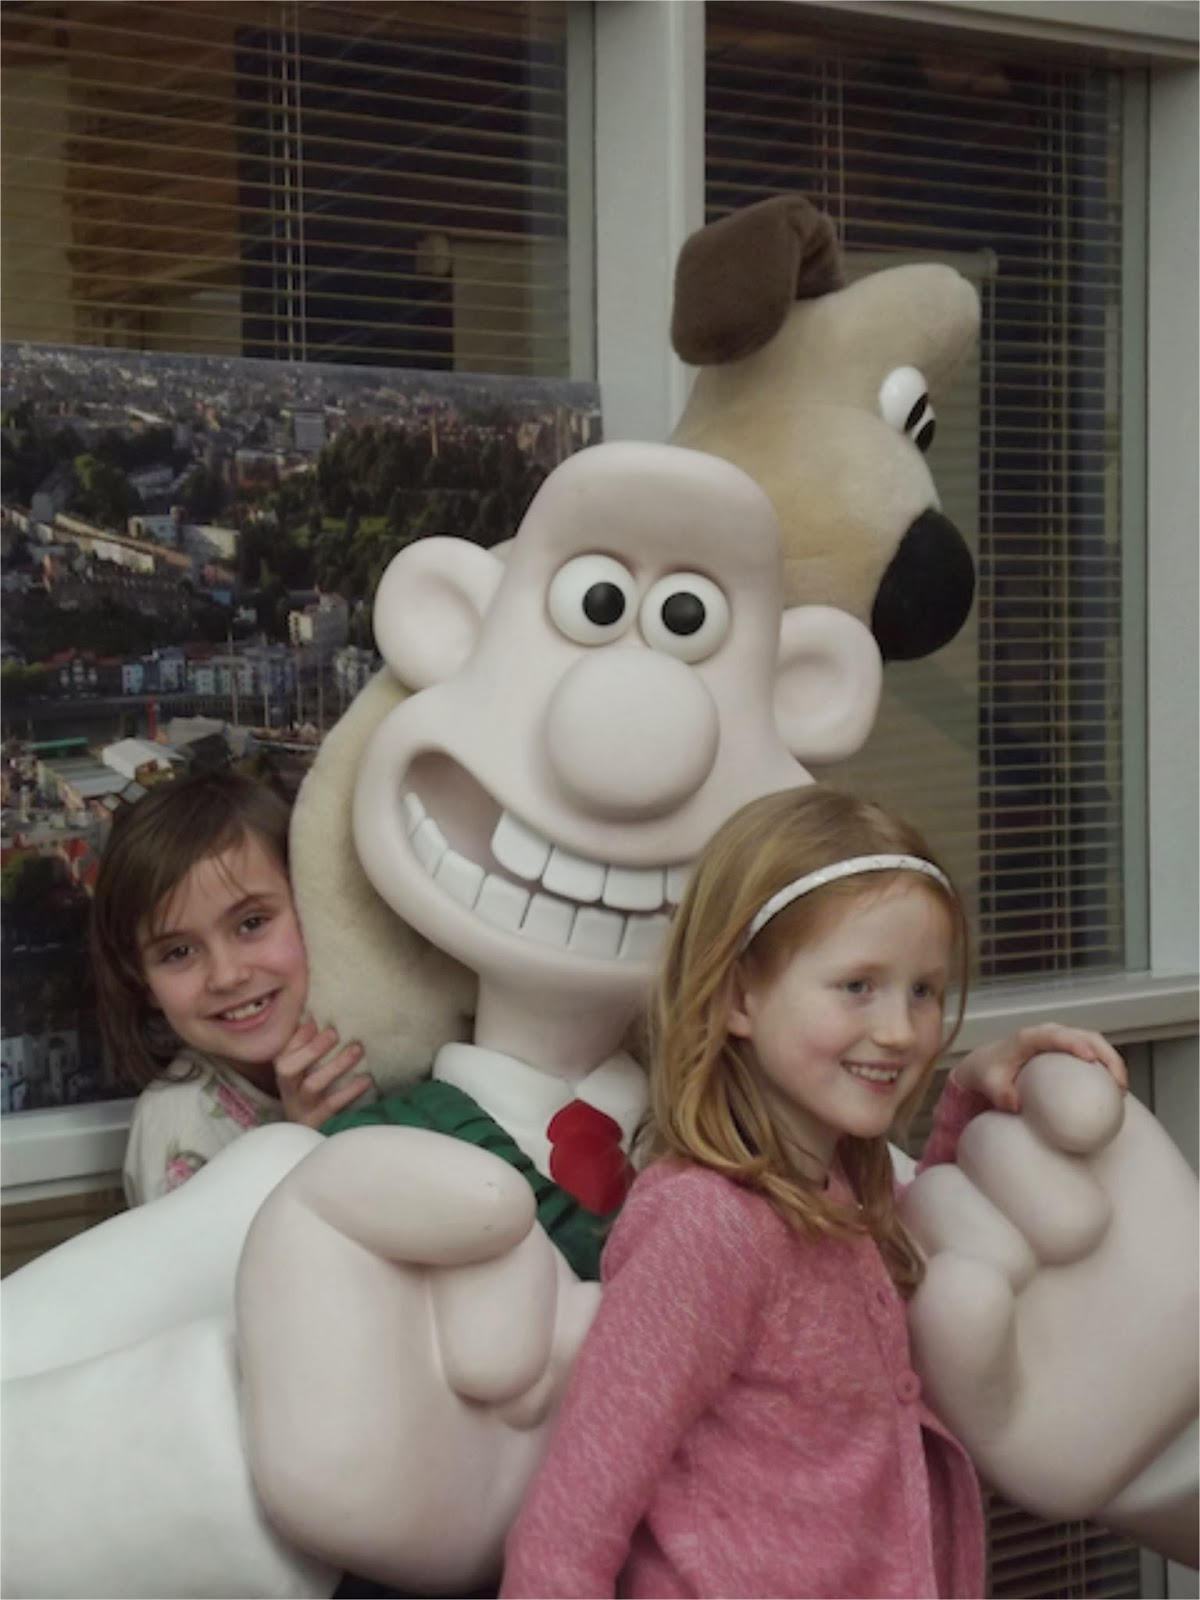 meeting Wallace and Grommit